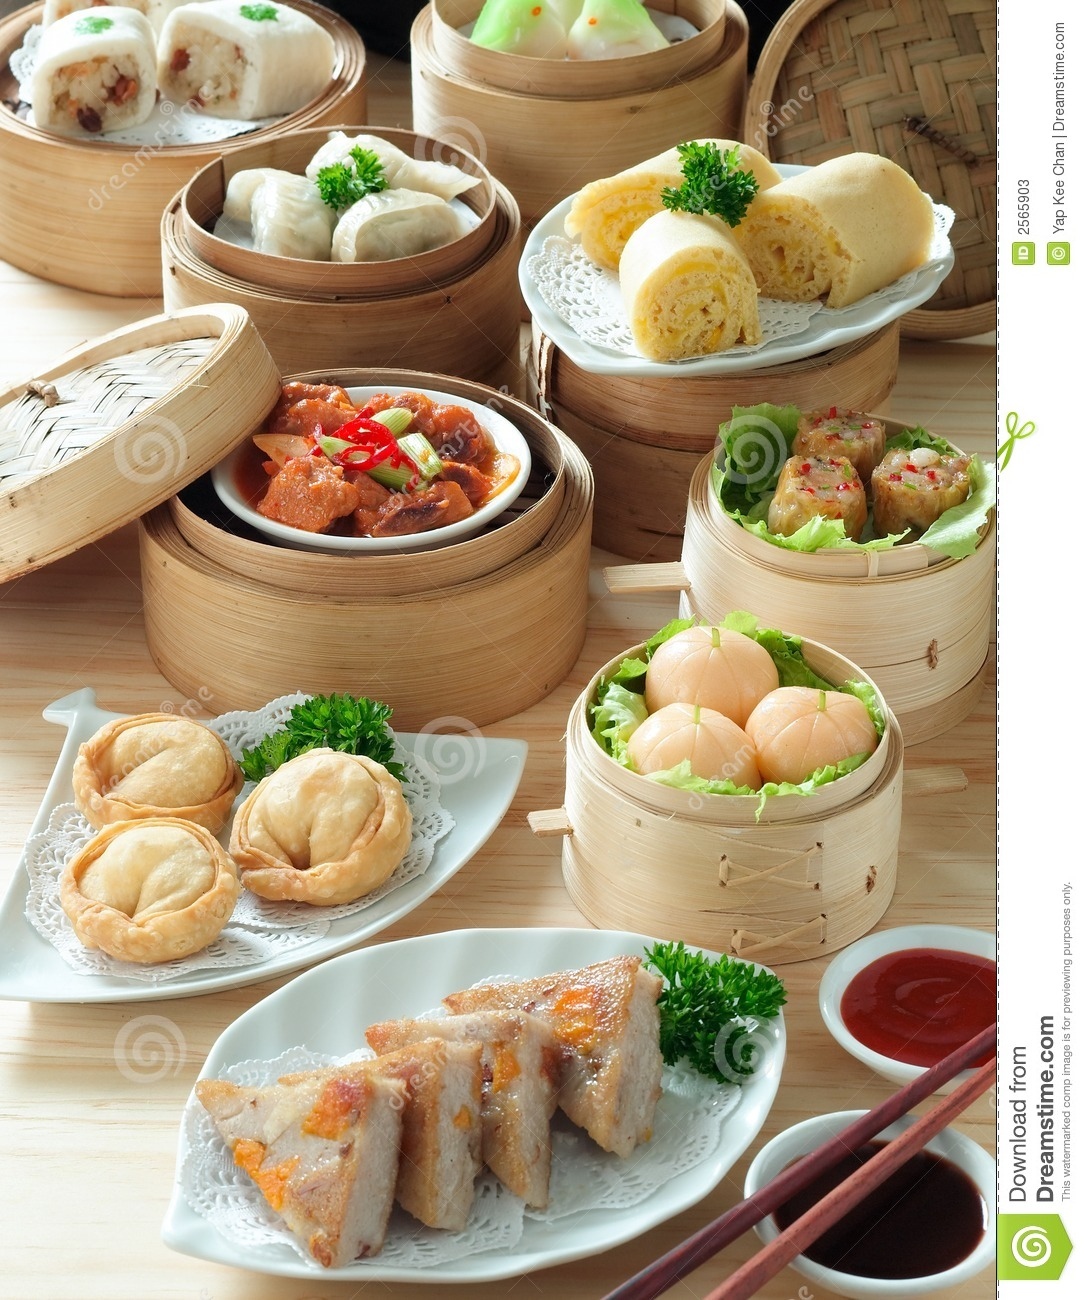 Asian cuisine stock photos image 2565903 for Ajk chinese cuisine